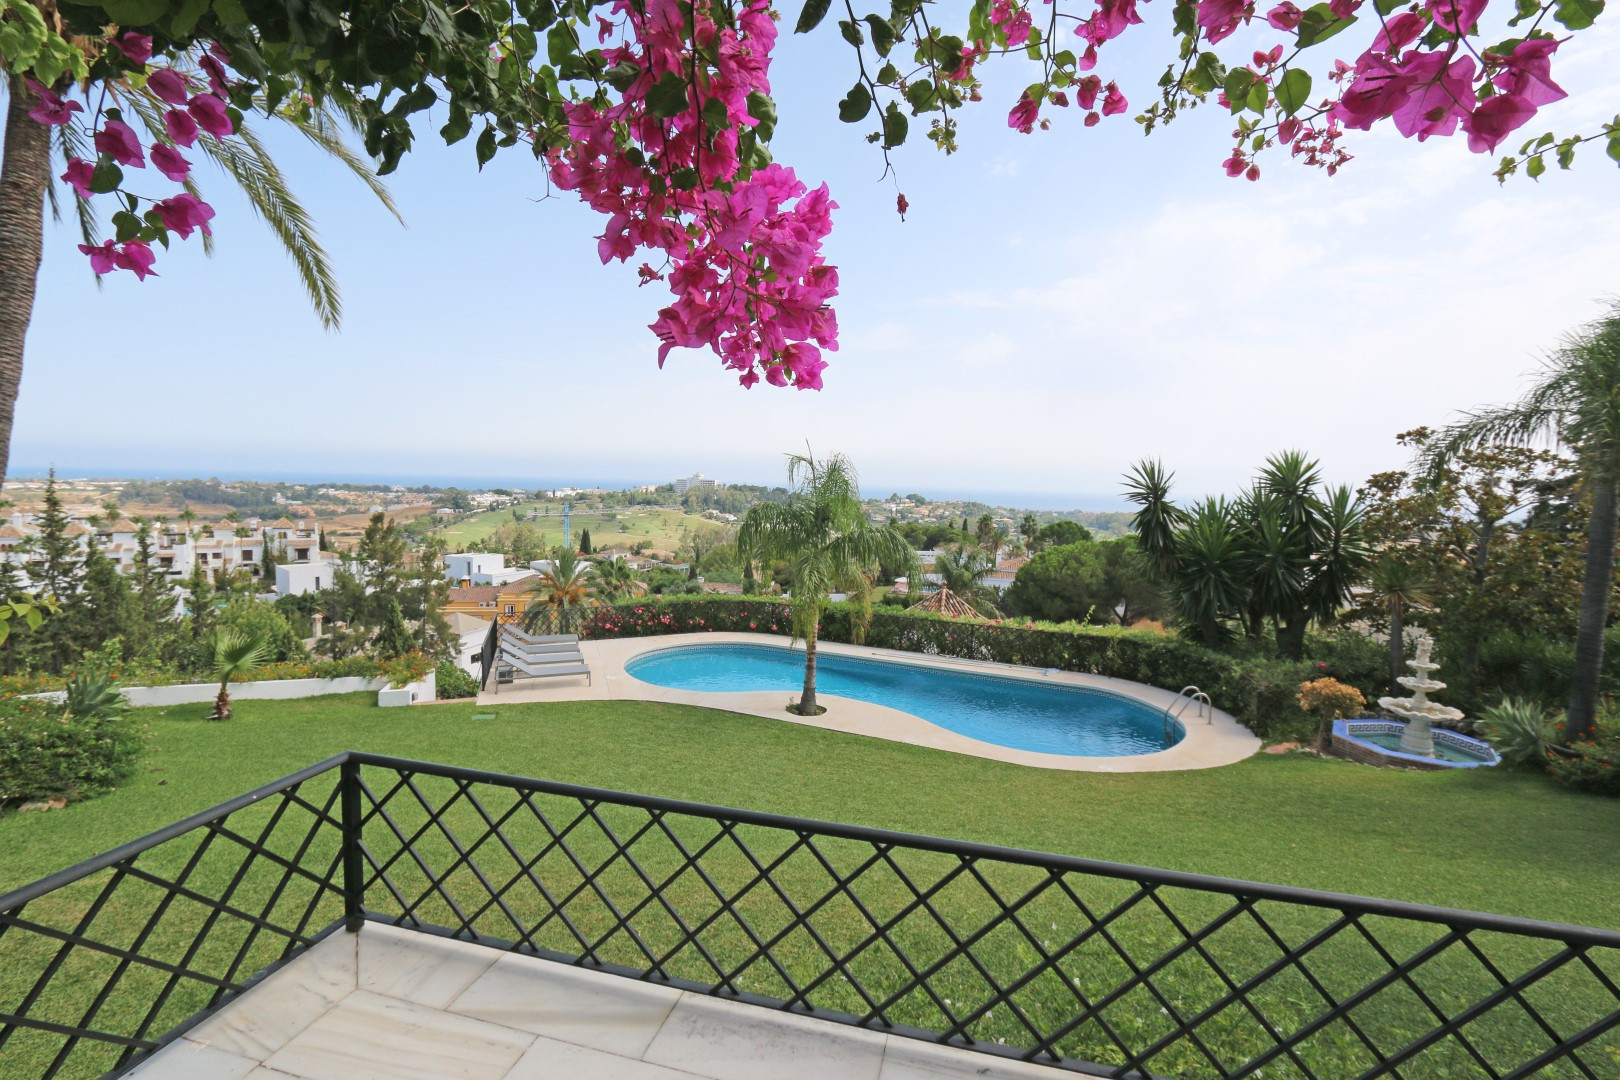 Luxury Modern Holiday Villa with Panoramic Sea View in Strategic Location in Estepona-Marbella